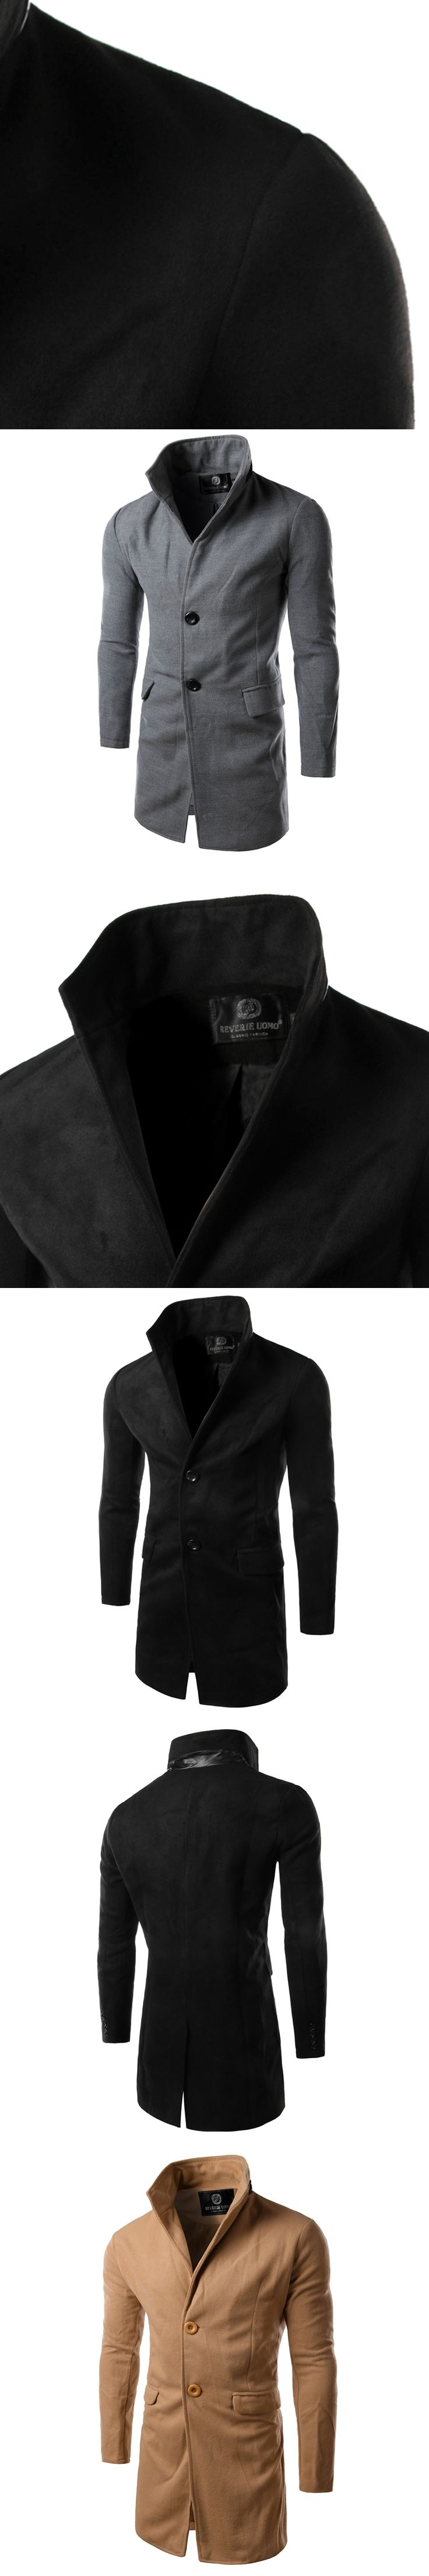 New Arrival 2017 Winter Mens Trench coat Turn-Down Collar Manteau Homme Long Trench Coat Men High Quality Mens Overcoat 14HZ02